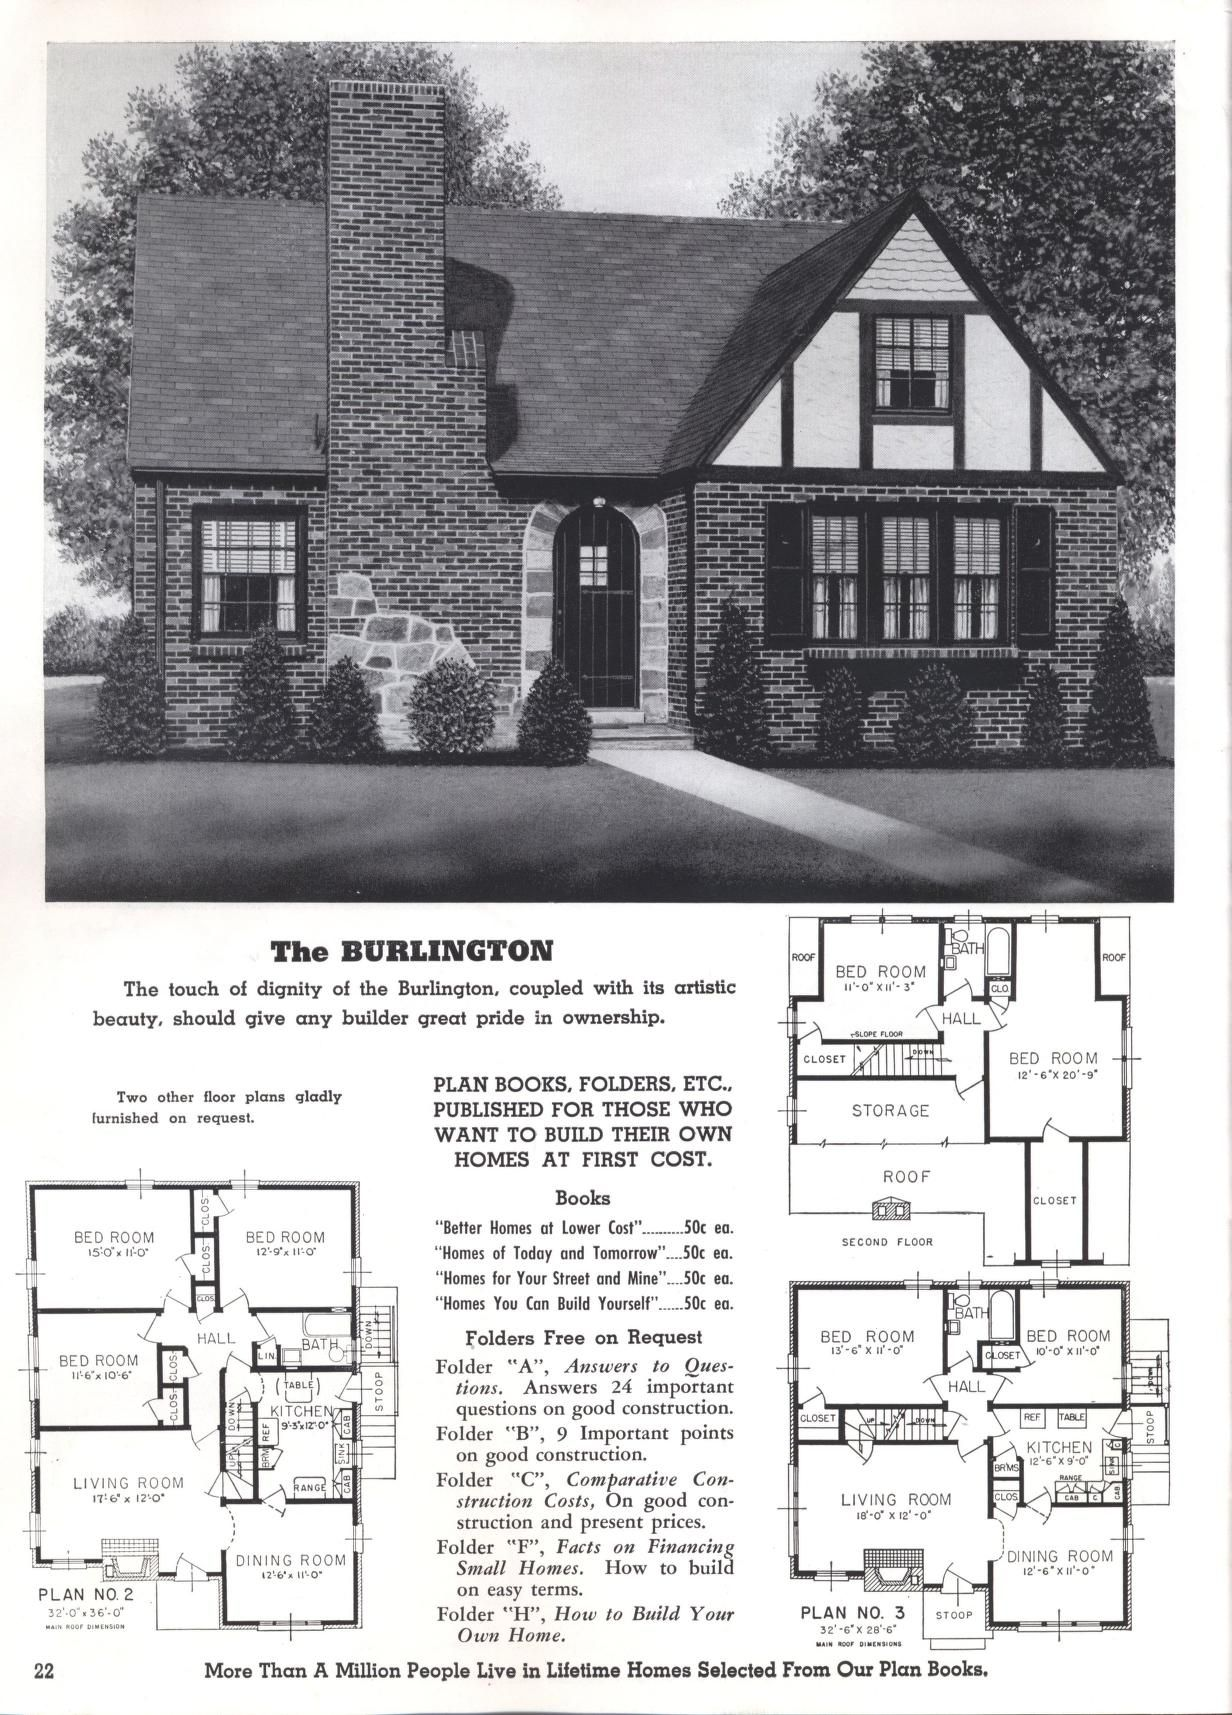 Better Homes At Lower Cost A 50 By Standard Homes Co Publication Date 1950 The Burlington Vintage House Plans House Design Old Houses